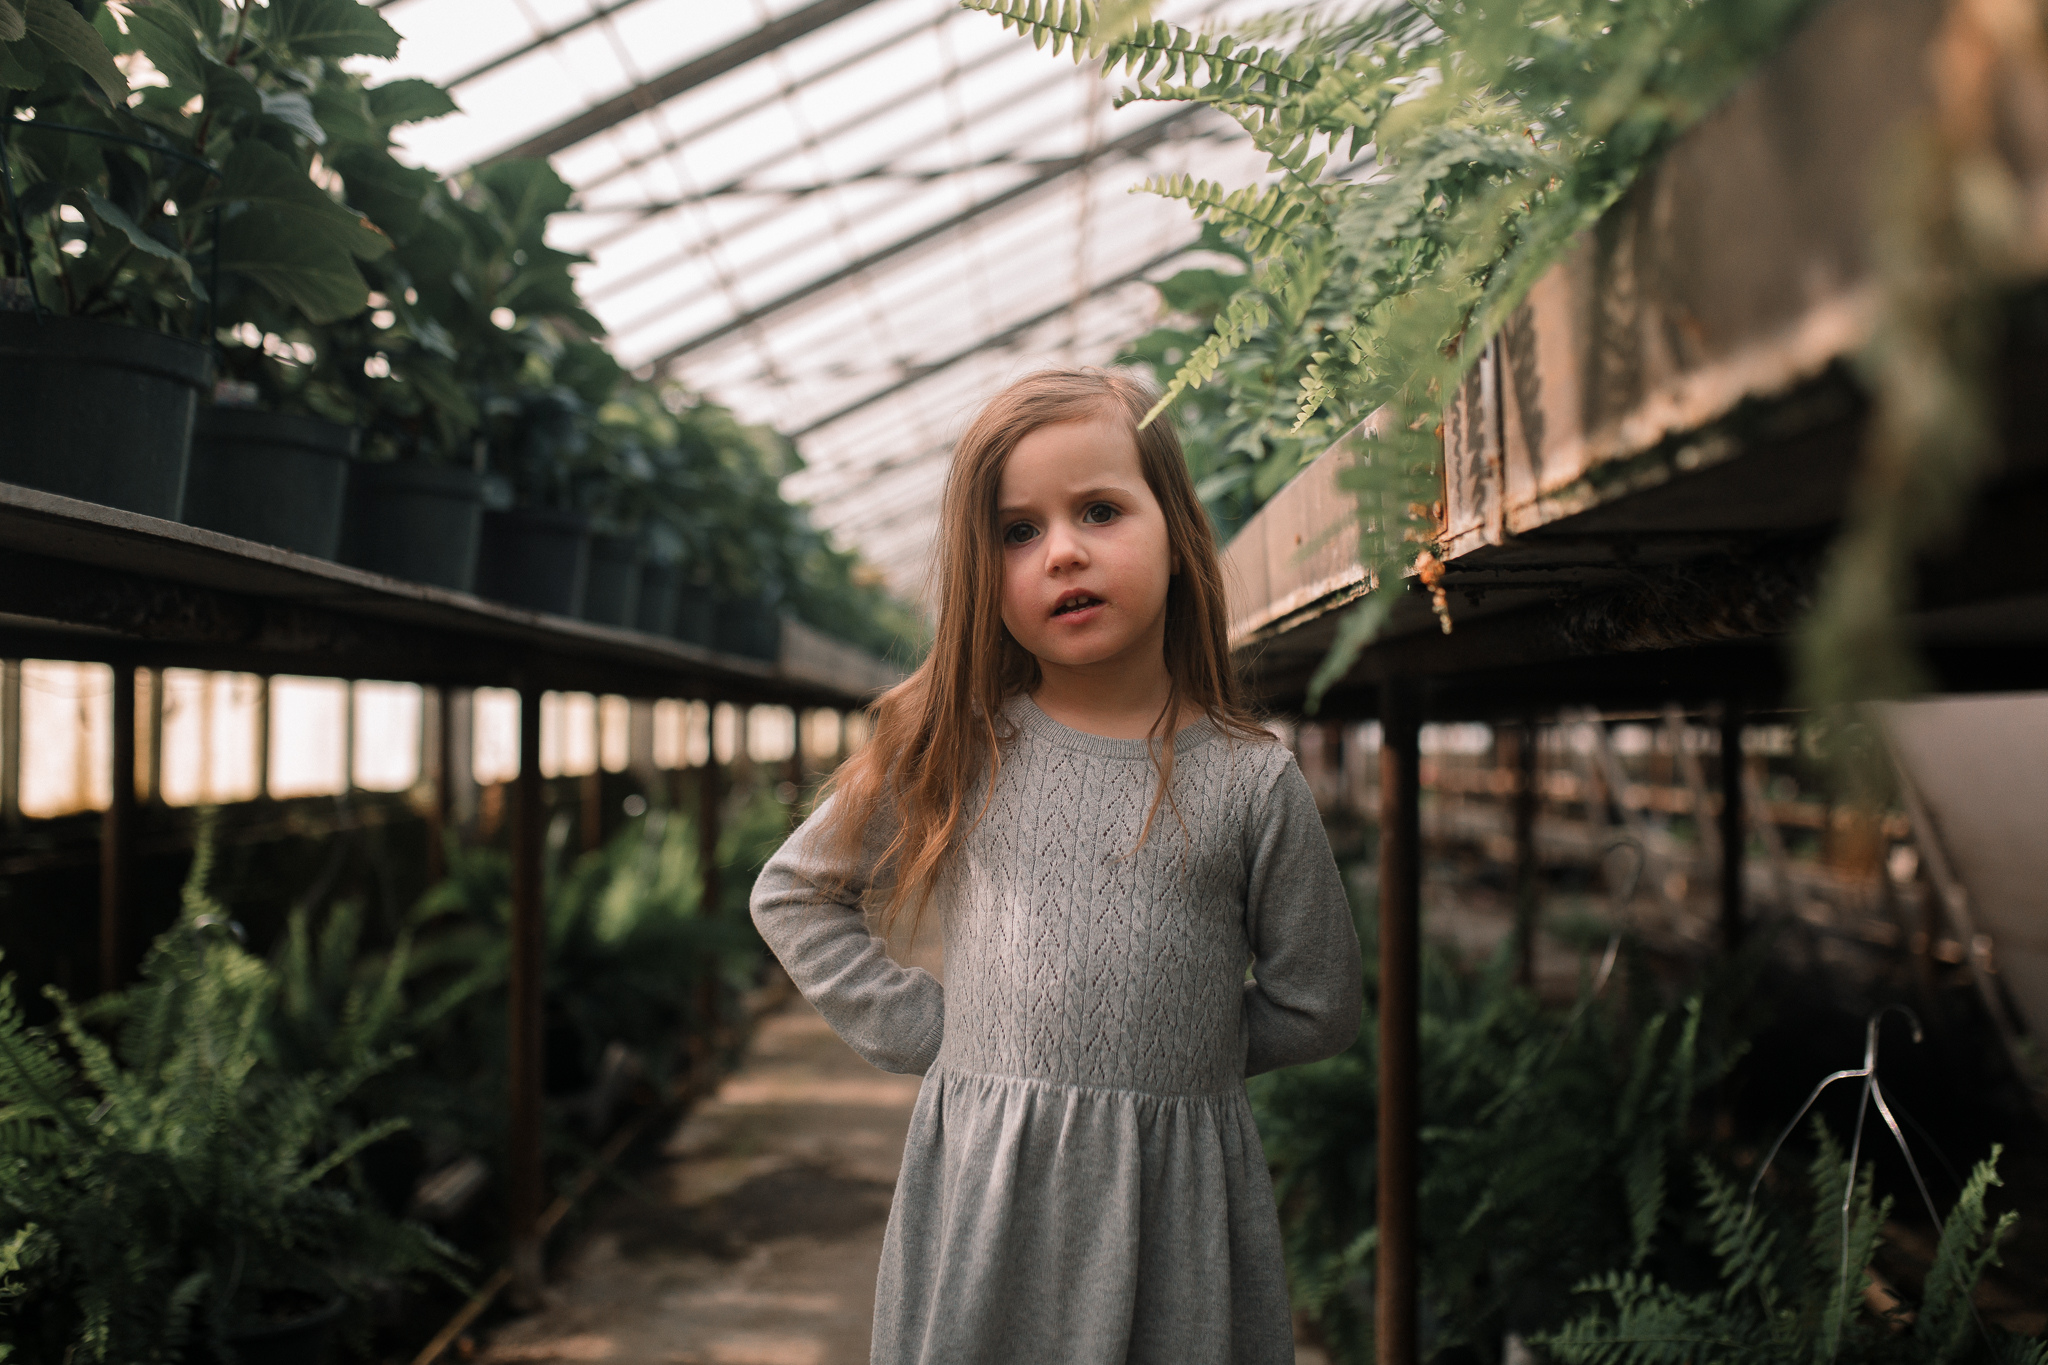 greenhouse plants outdoor girl lifestyle documentary family Ashburn Loudoun northern Virginia  childhood Marti Austin Photography